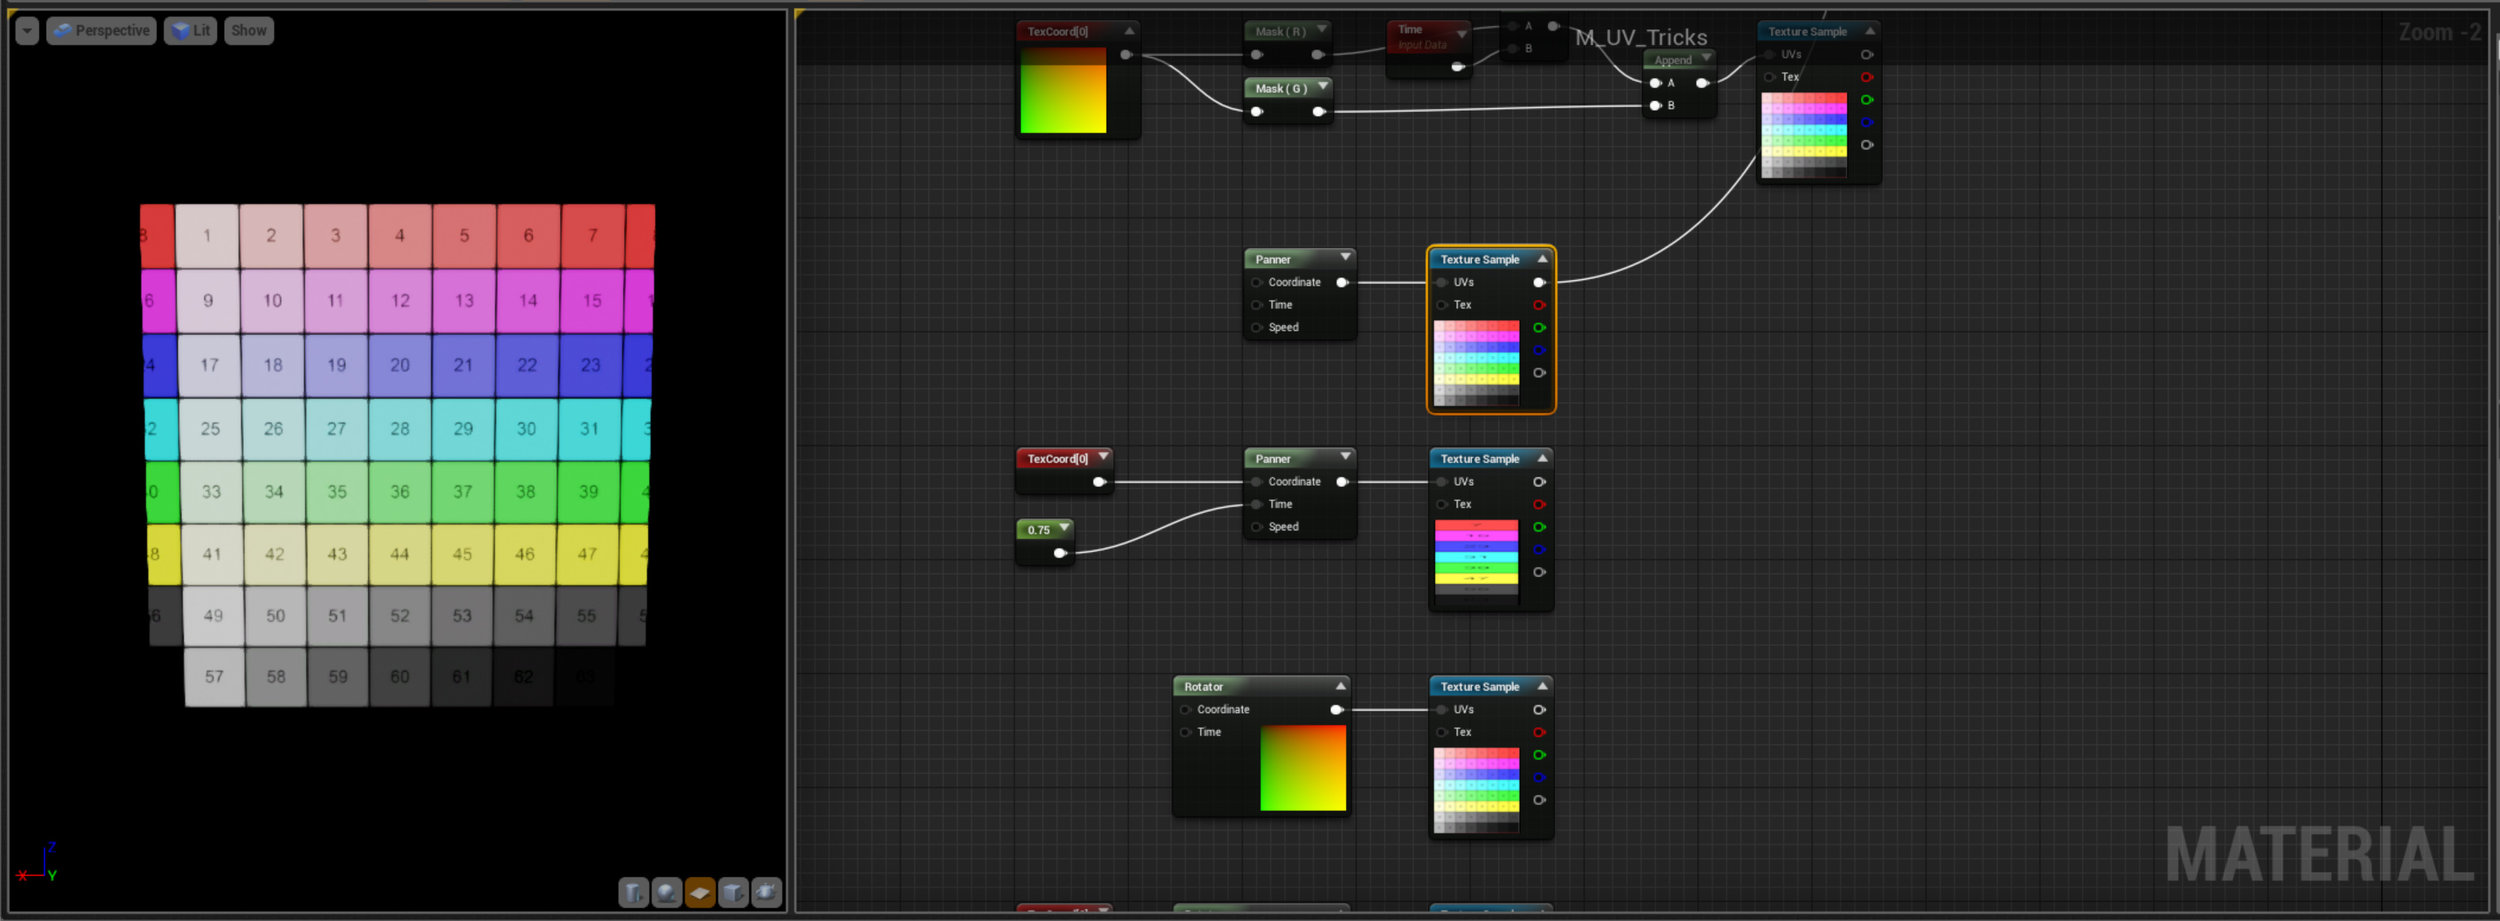 So what we've created here is what Unreal refers to as a Panner node - but it's basically doing the same thing, just moving the UV's over time by adding values to the U and V channel.  Notice that if we plug a constant value into the Time input of the Panner we get control over the movement without any scrolling, useful to directly control your material offsets.